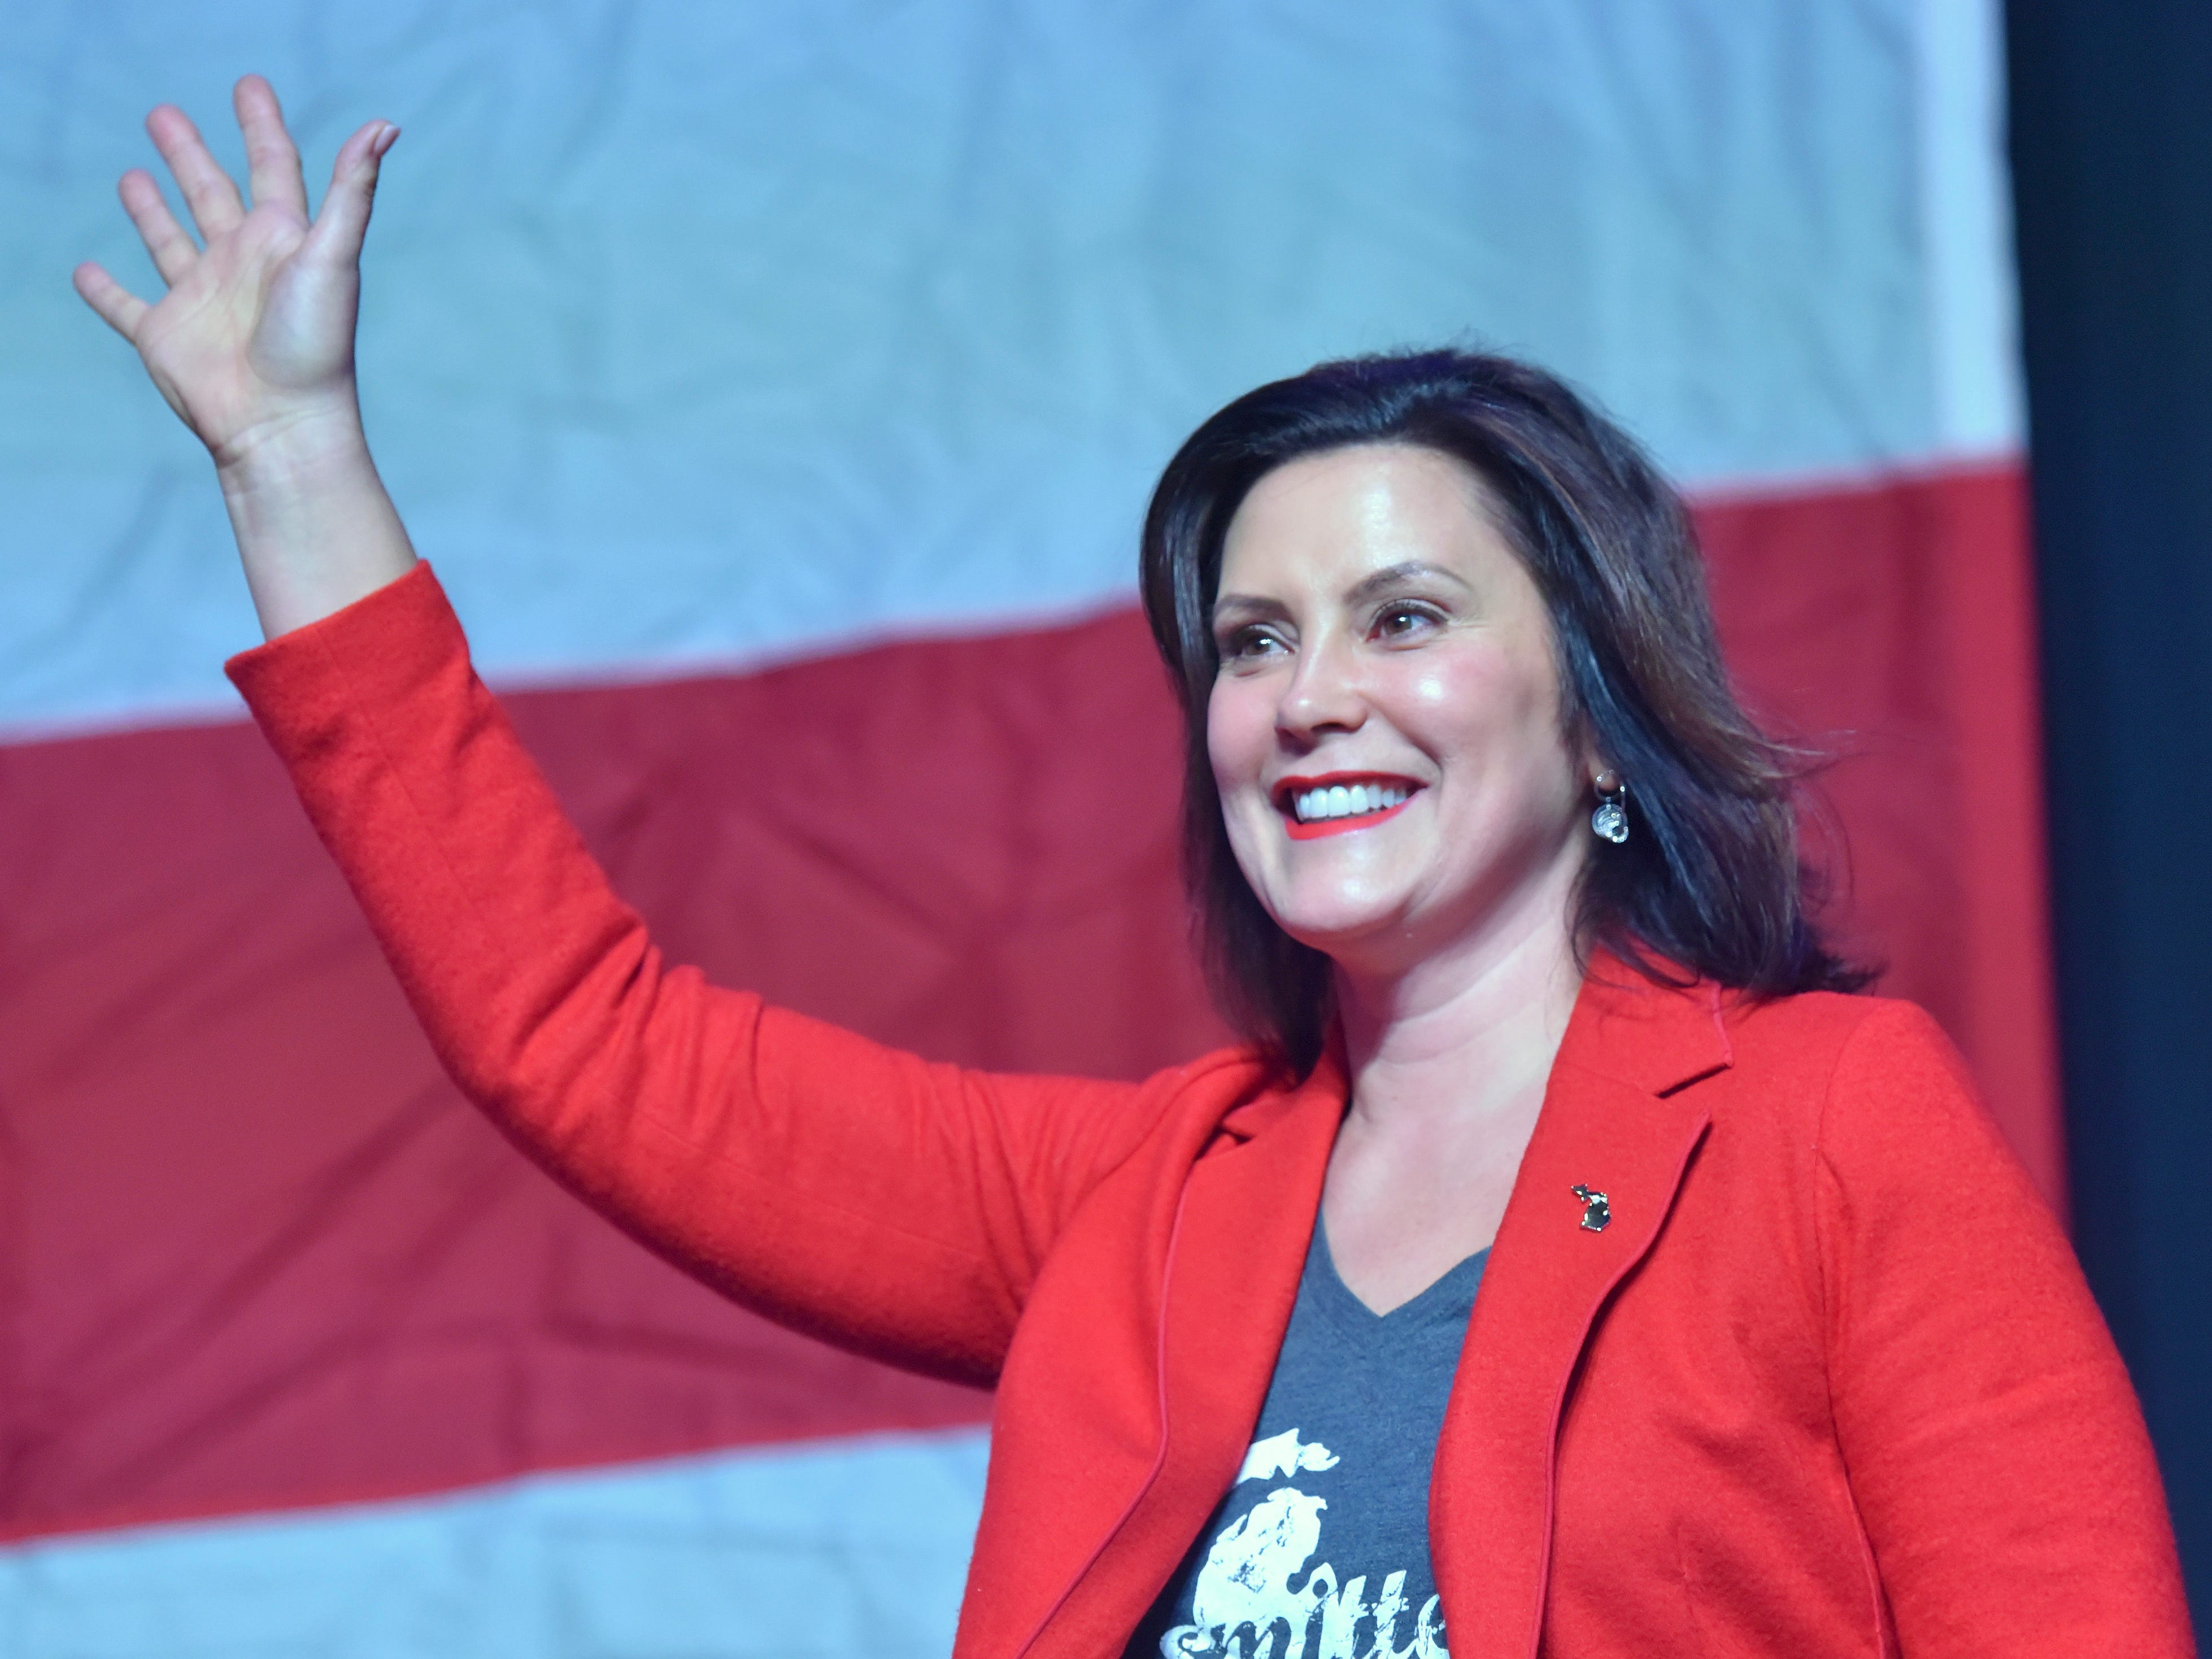 Governor Gretchen Whitmer waves at supporters as she takes the stage to speak.